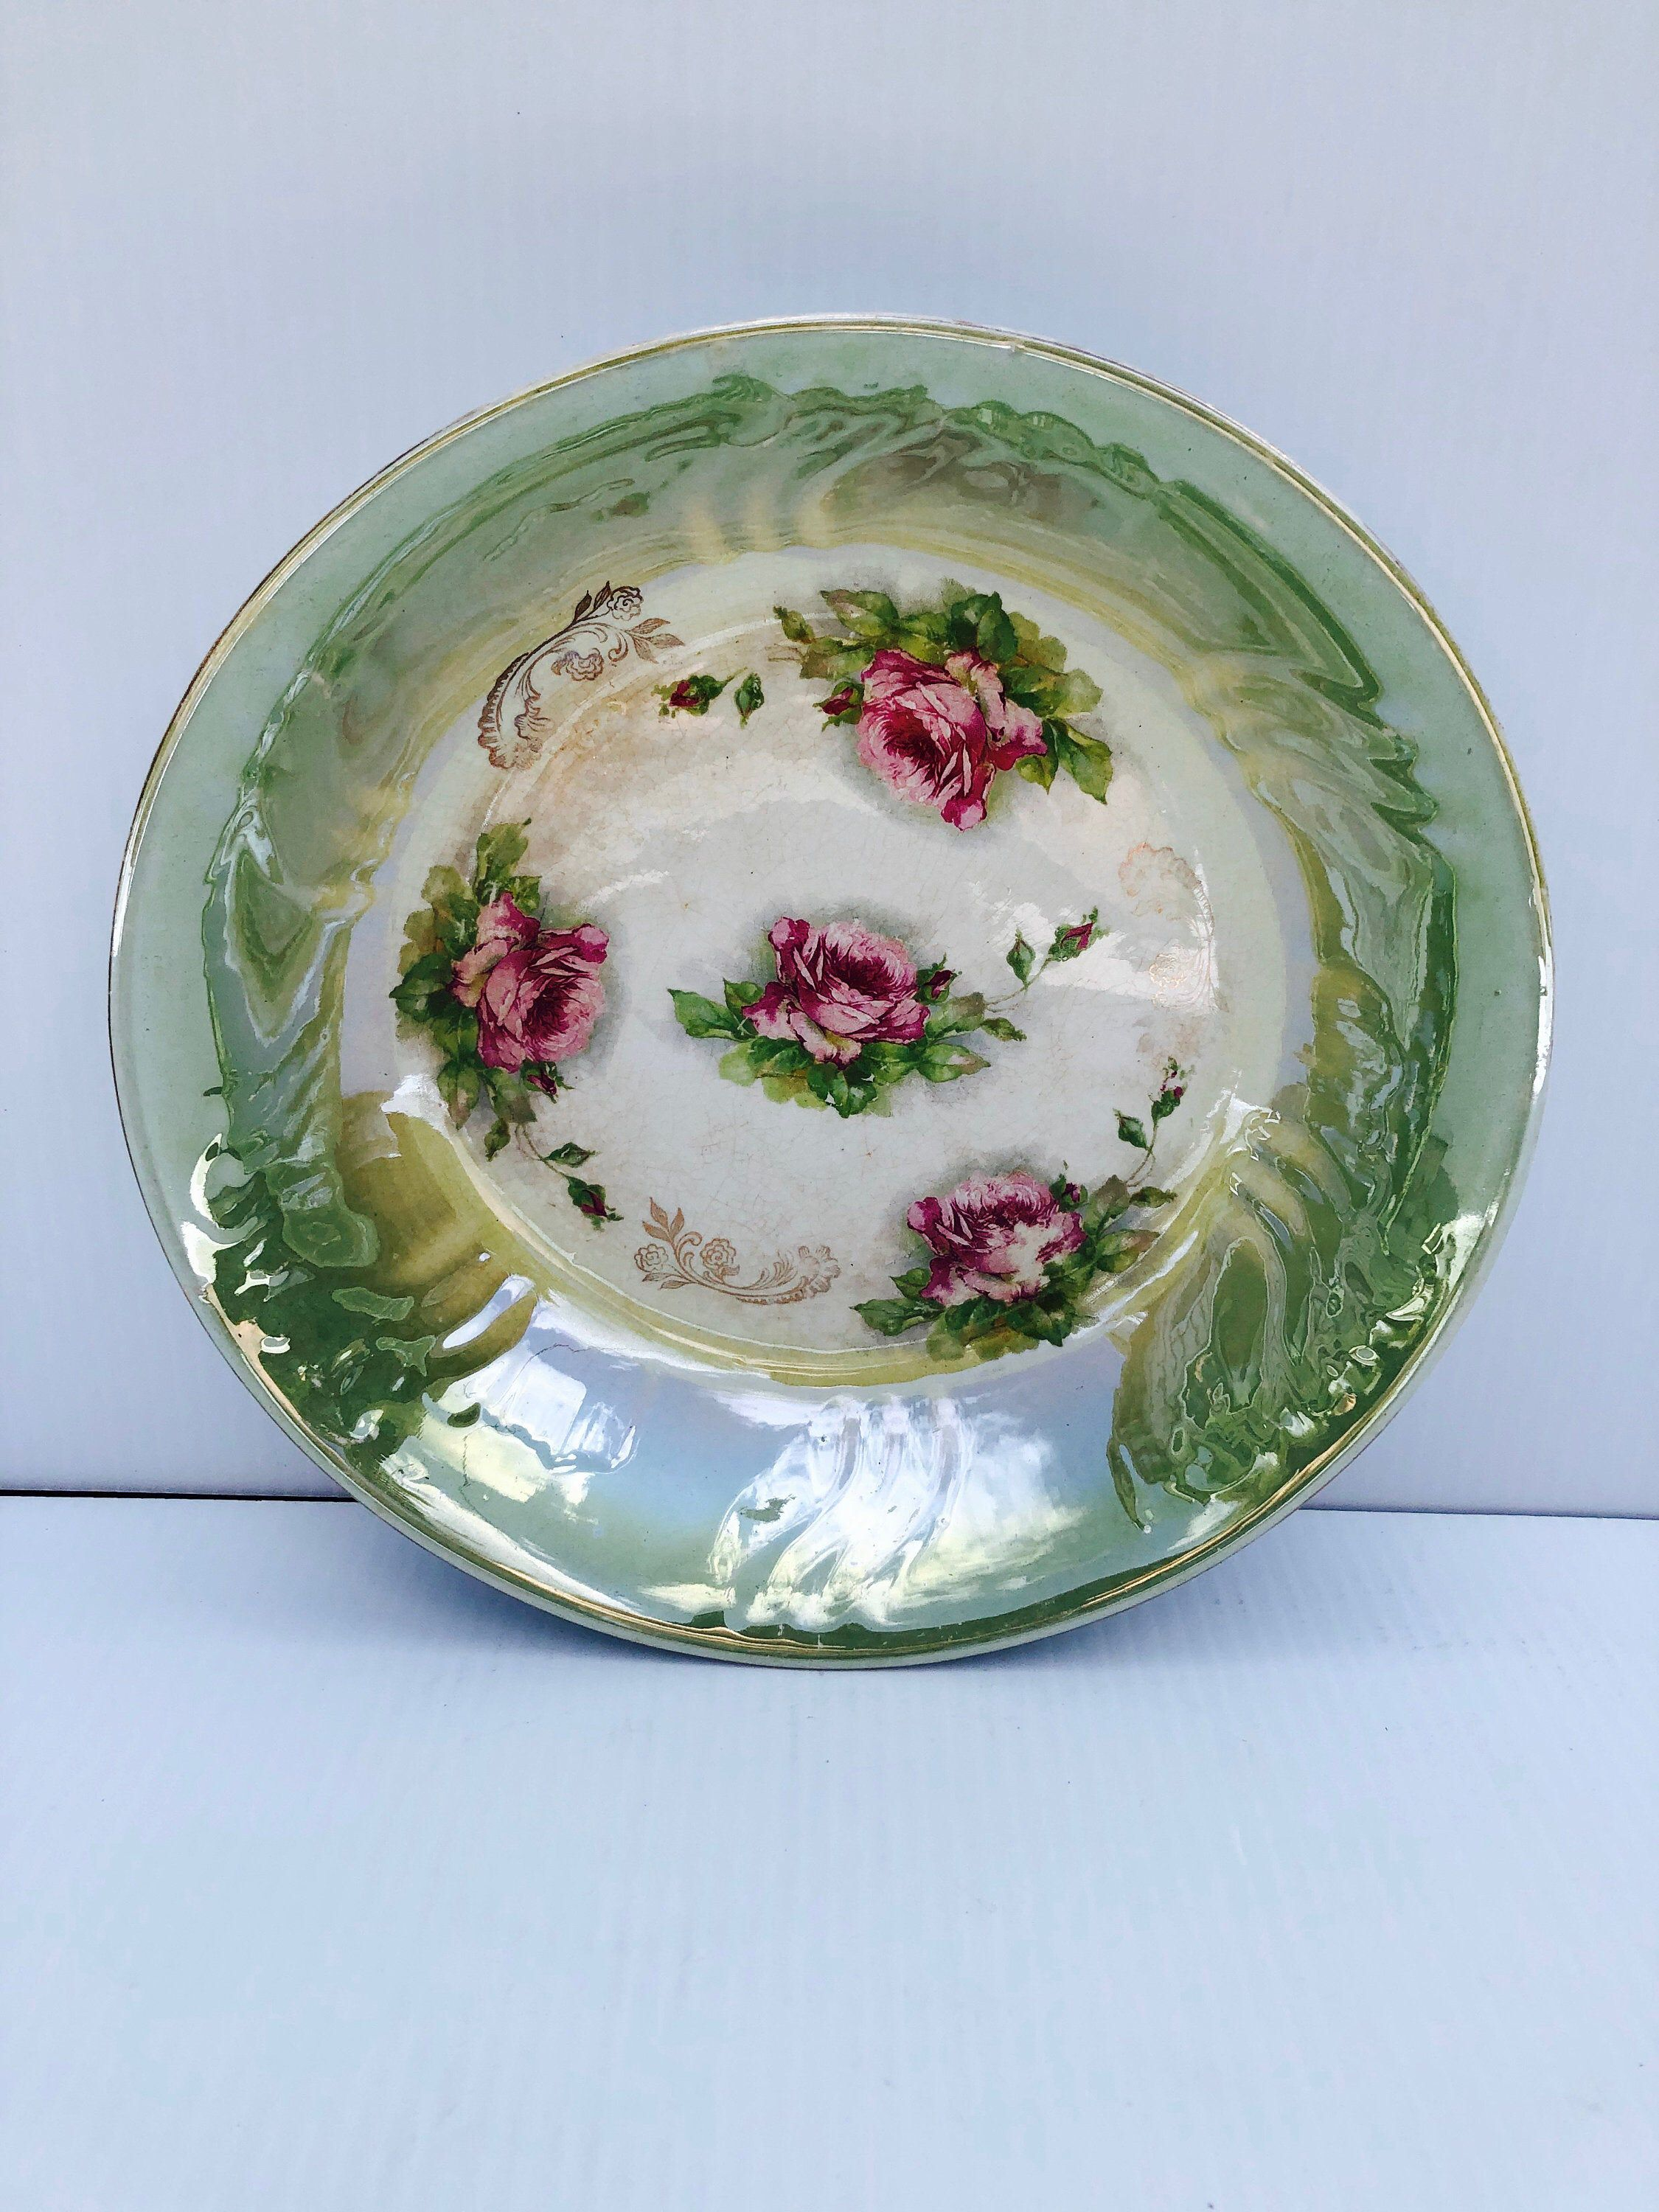 Antique Floral Bowl American China Company Shiny Green Decorative Bowl With Pink Roses In 2020 Floral Bowls Decorative Bowls Pink Roses